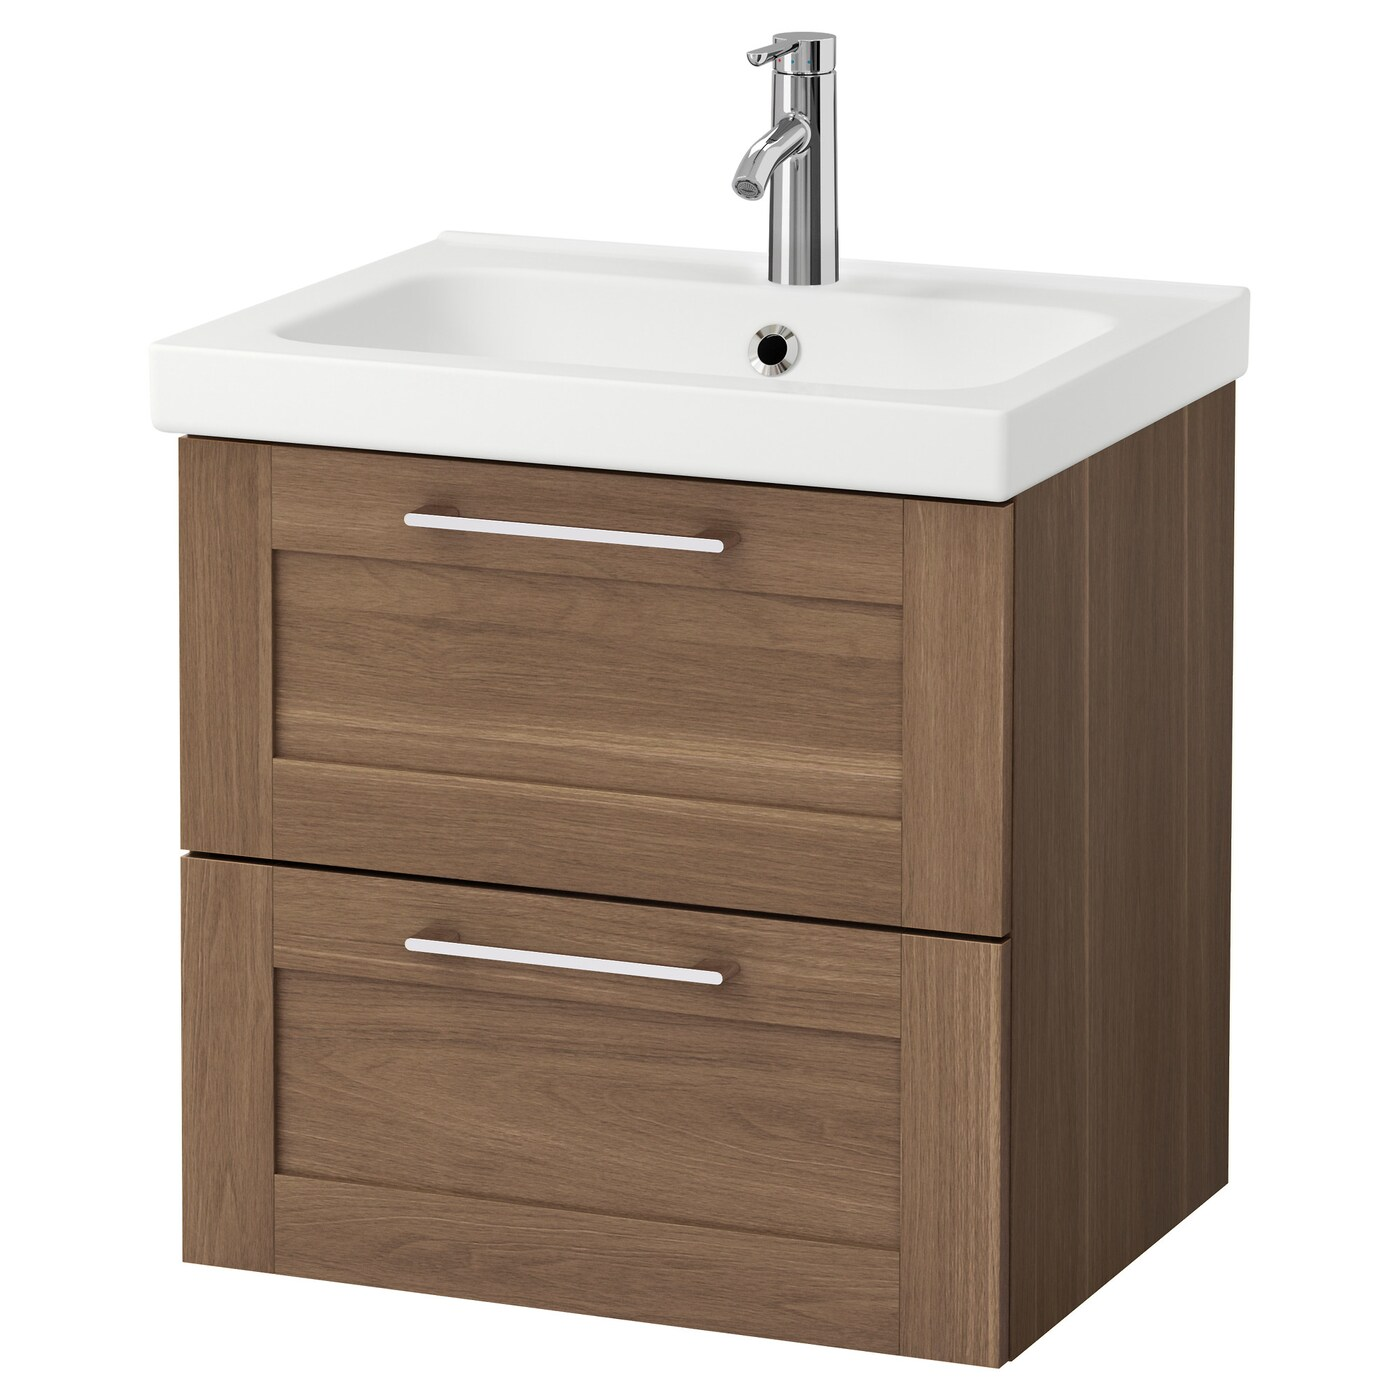 Walnut bathroom furniture uk - Ikea Odensvik Godmorgon Wash Stand With 2 Drawers